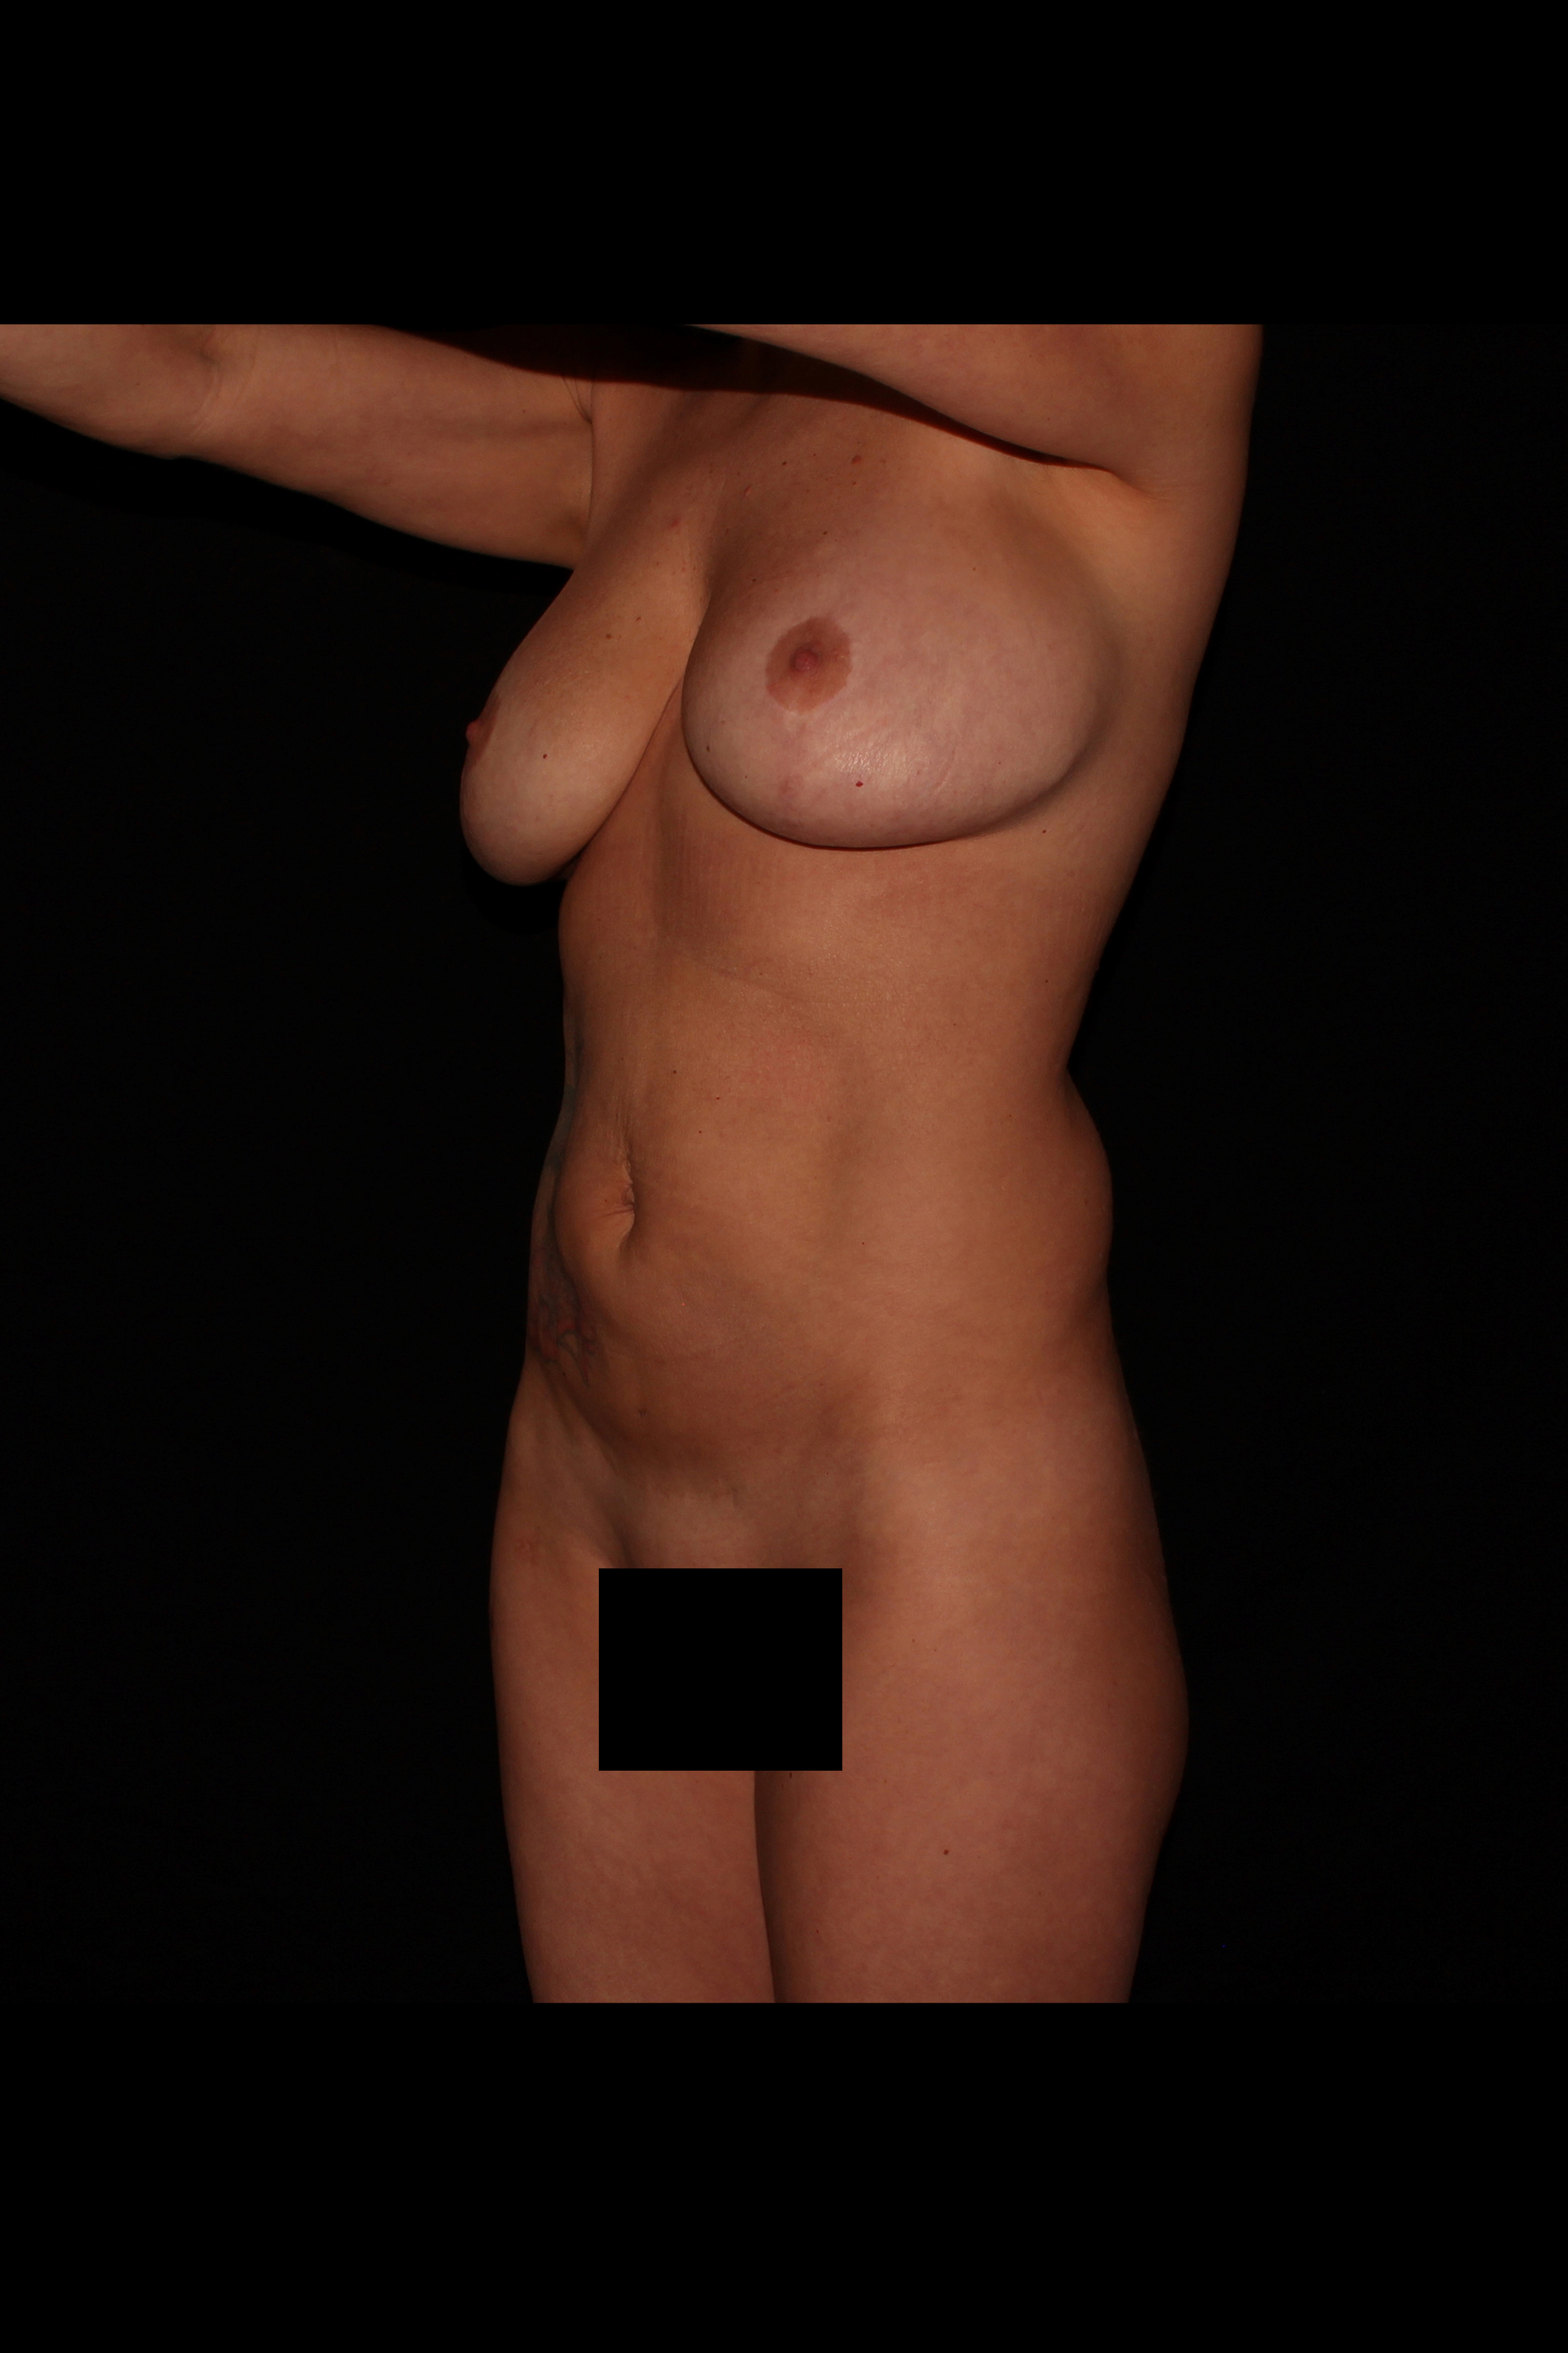 Before Ab Etching - Mom of 4! 6 pack look